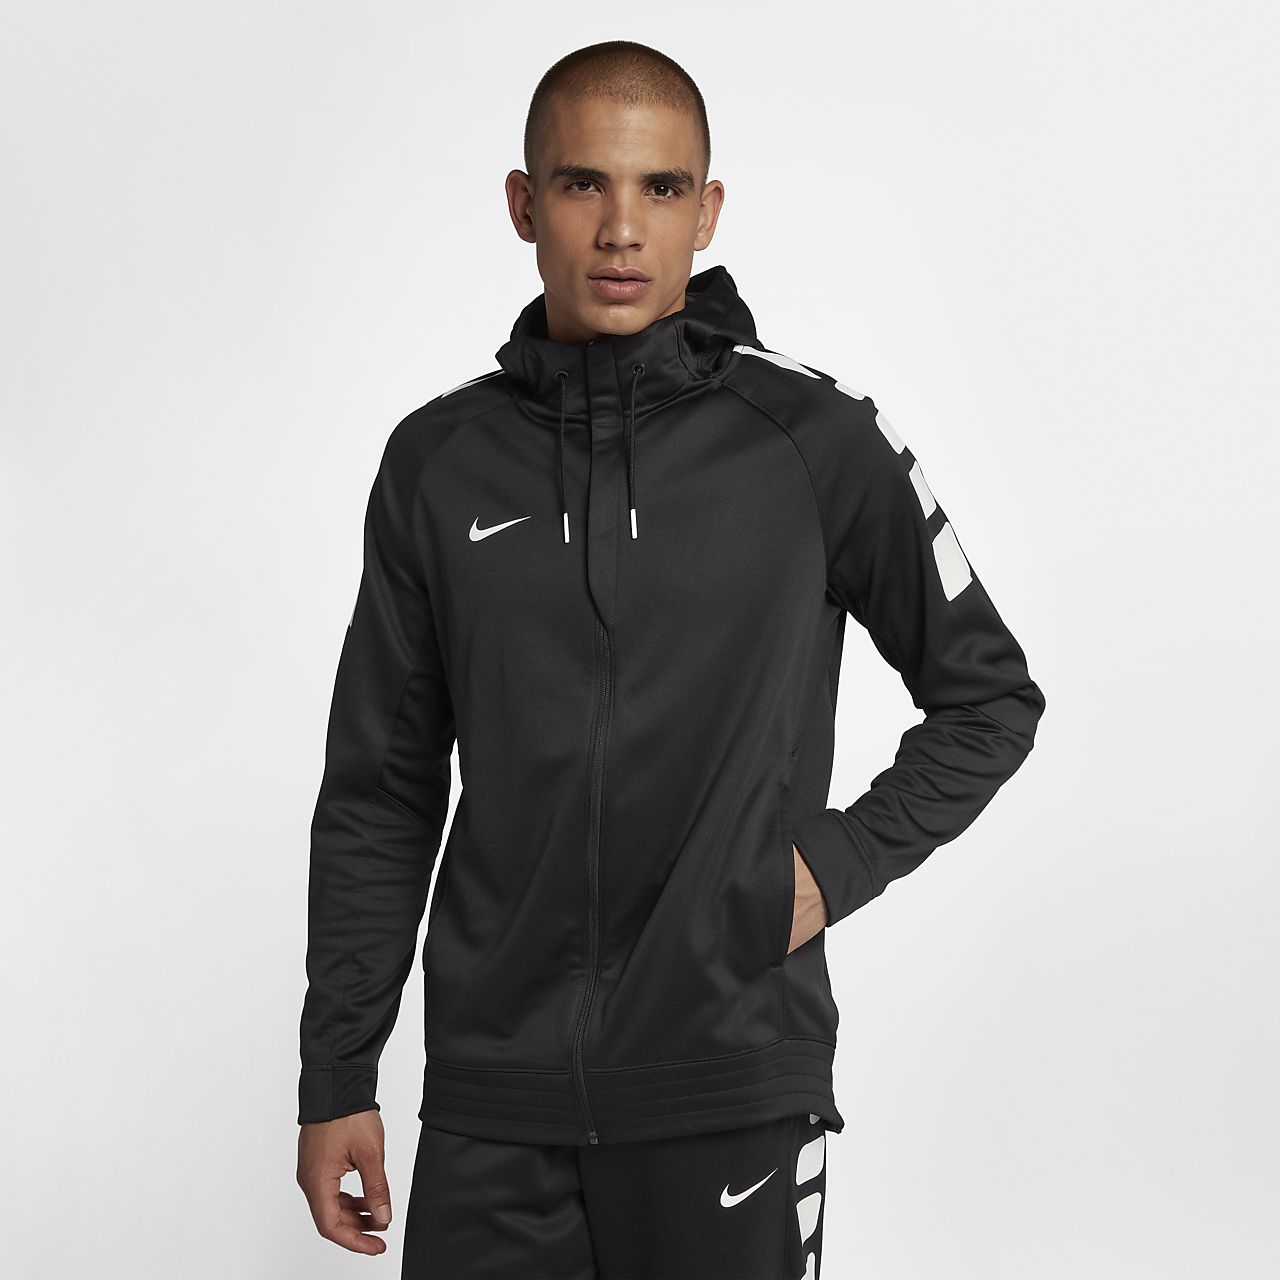 best sale hot sales super cute Nike Therma Elite Men's Basketball Hoodie